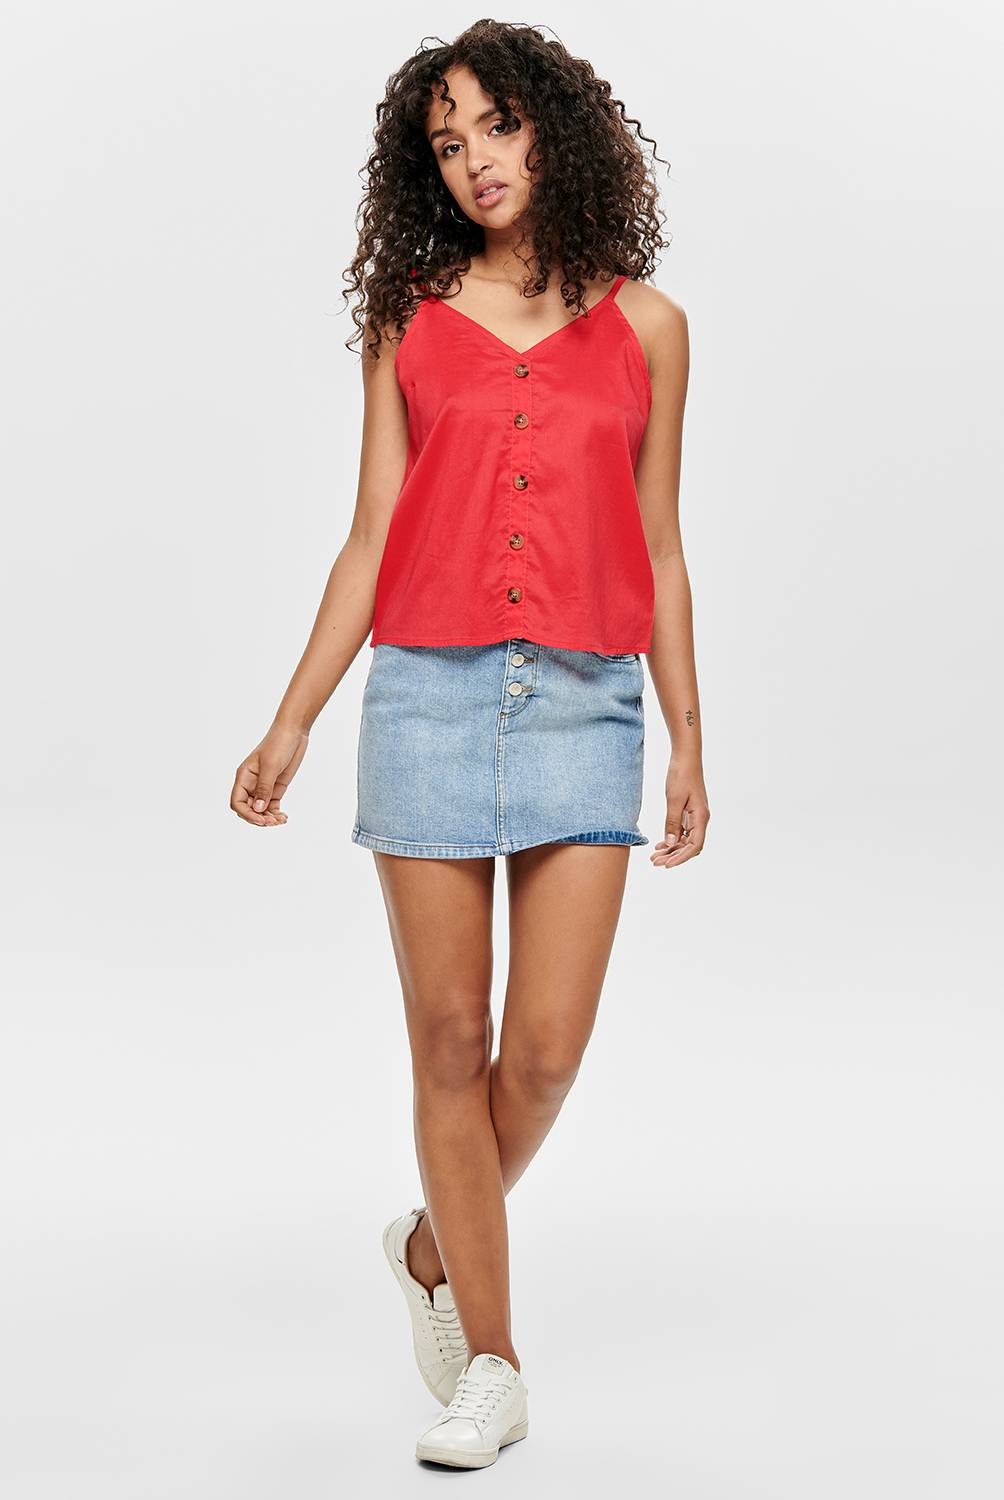 Only - Polera Mujer